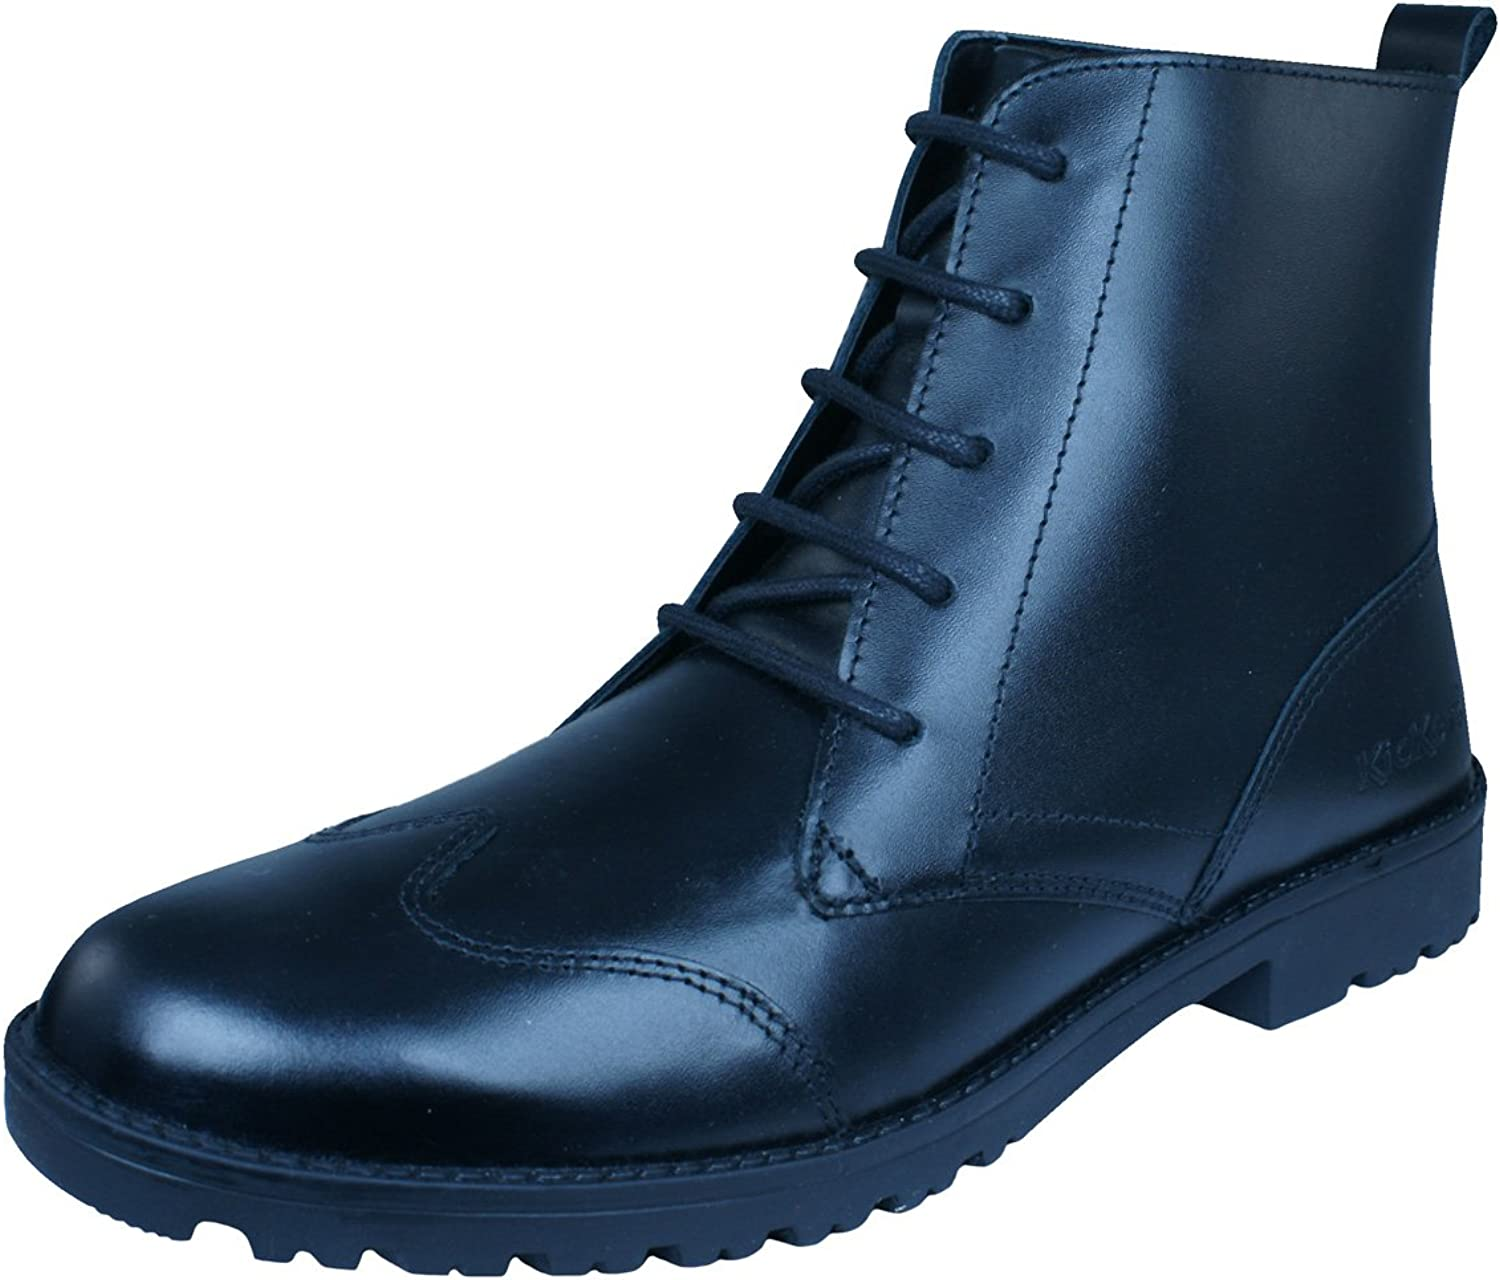 Kickers Lachly Hi Womens Leather Boots